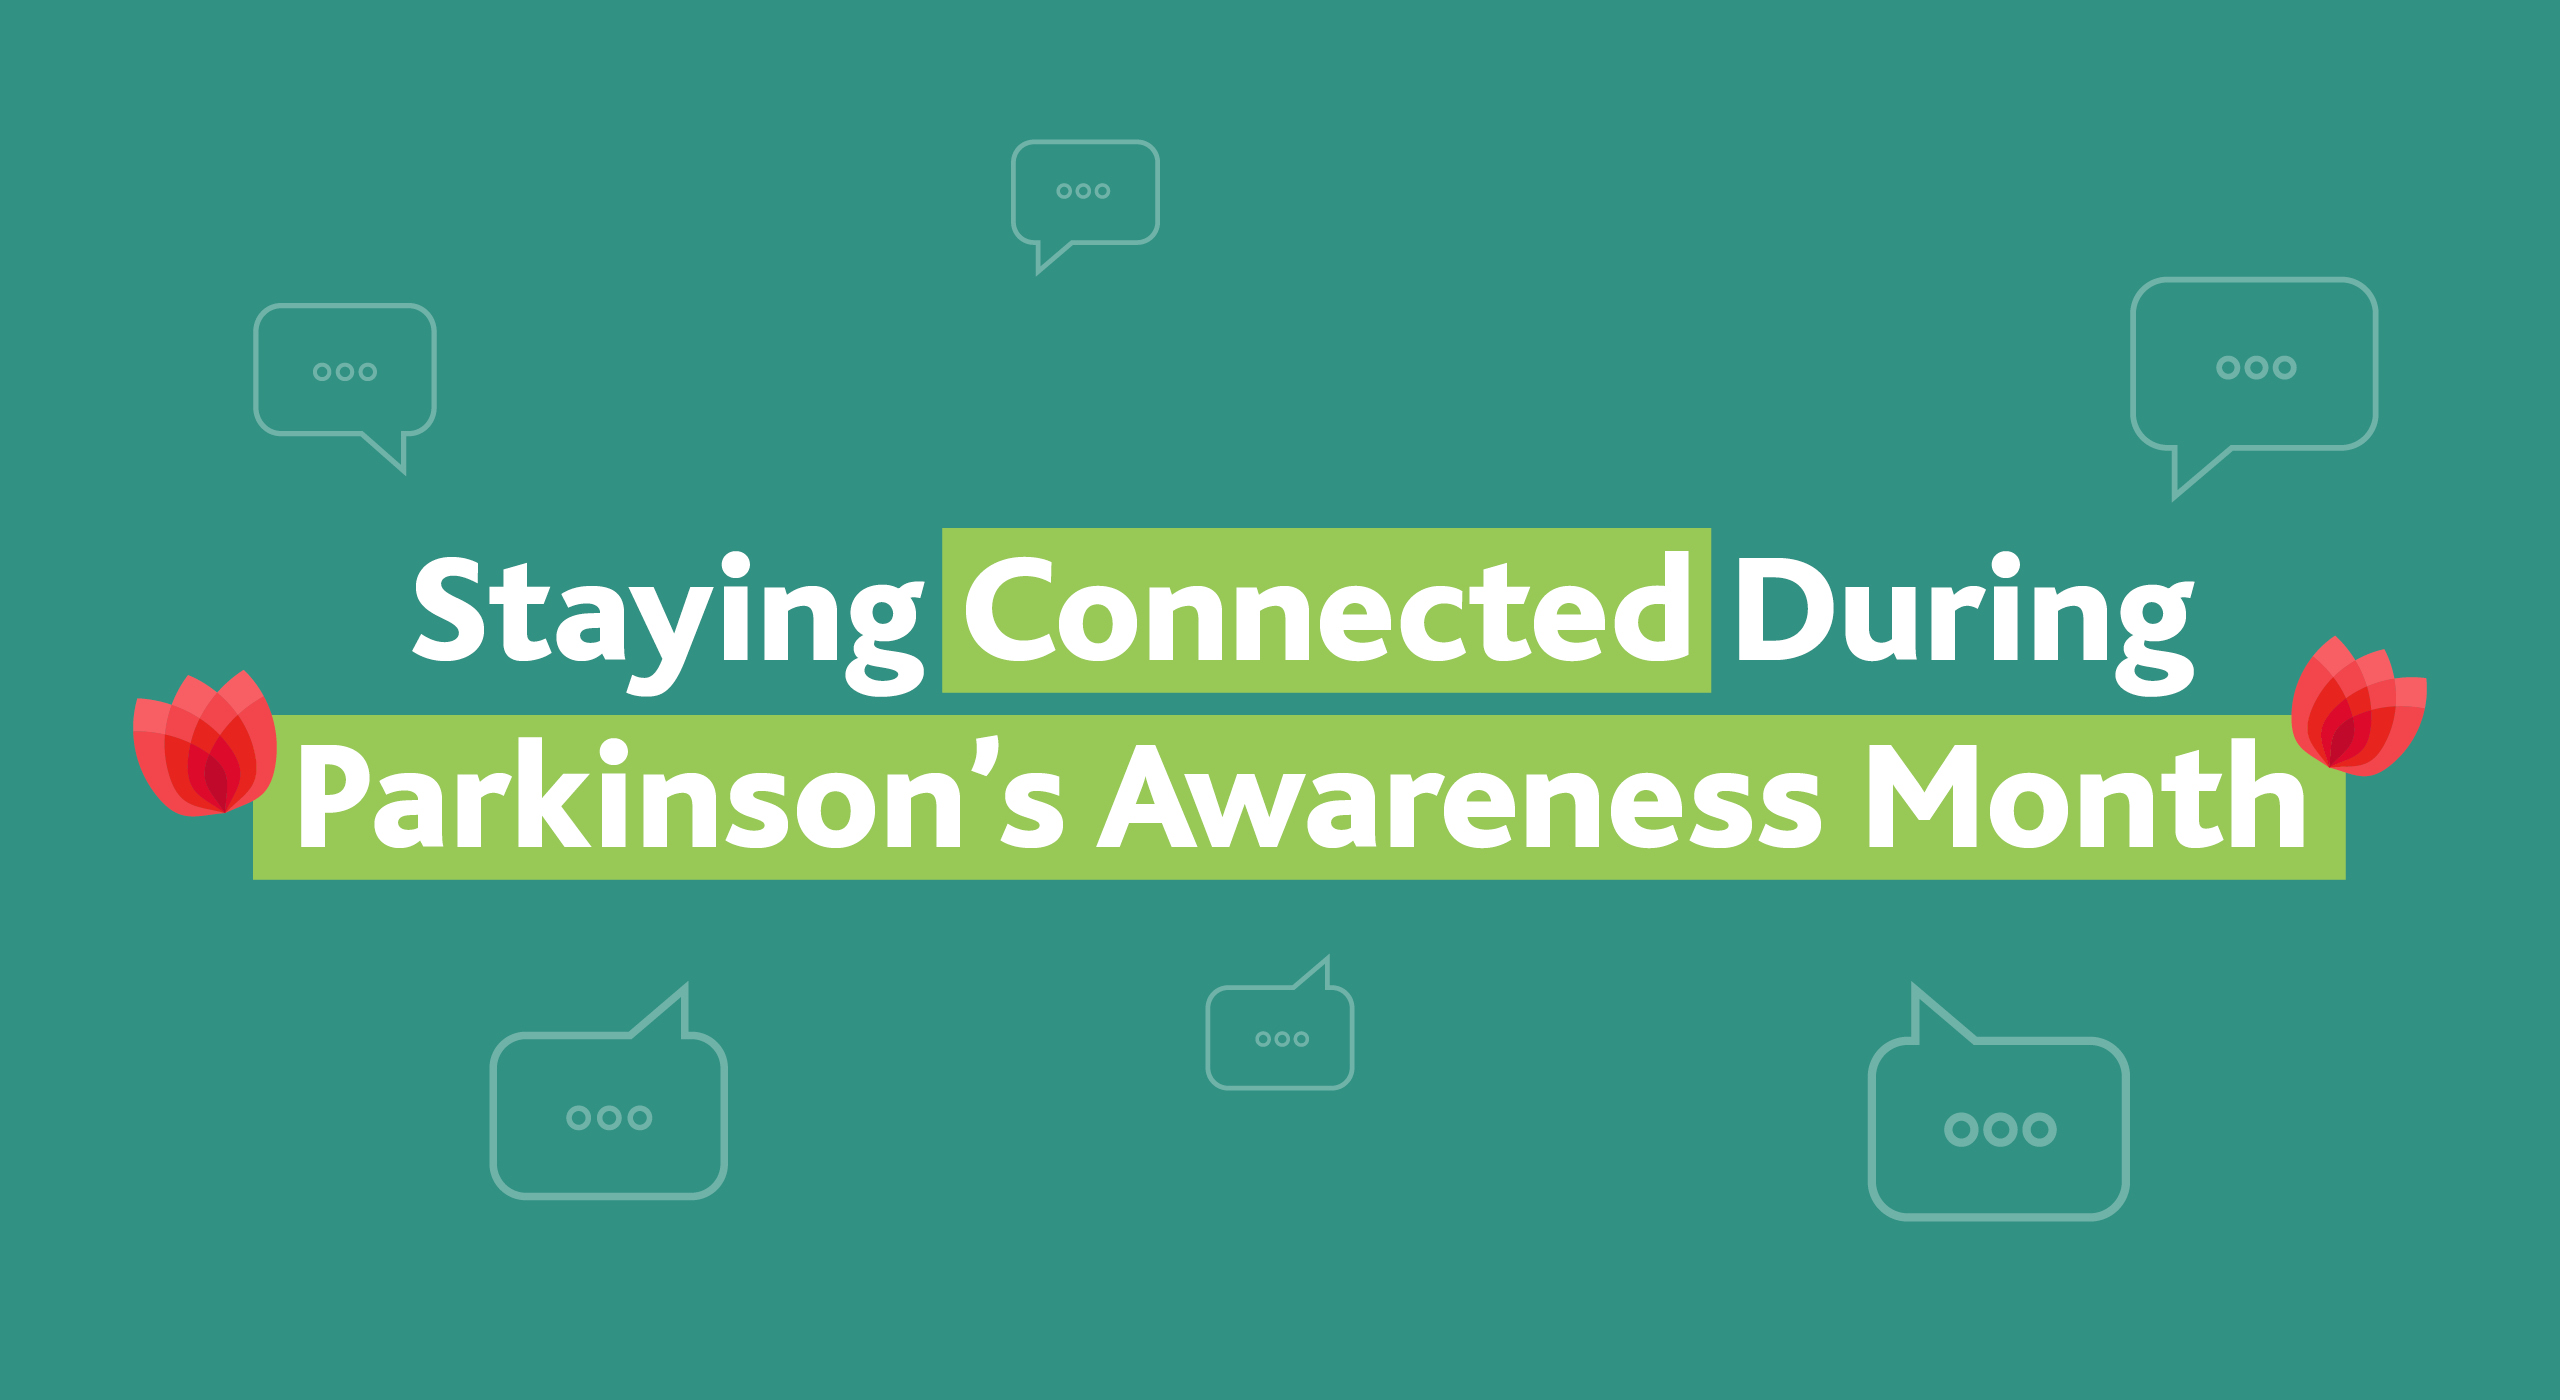 Parkinson's Awareness Month 2020: Finding Hope and Social Connection Amidst Social Distancing